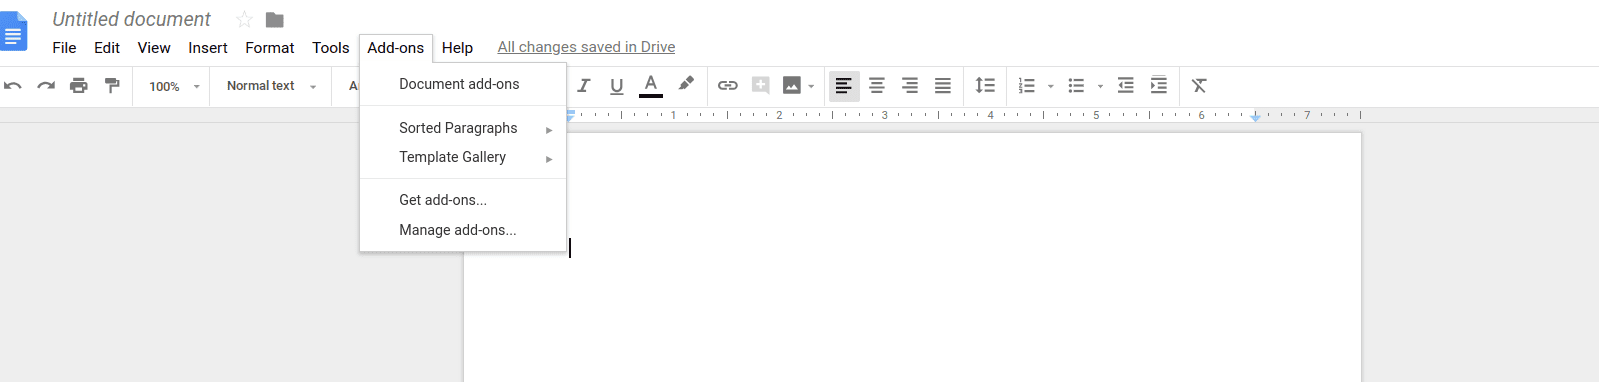 Installed Add-ons in Google Docs